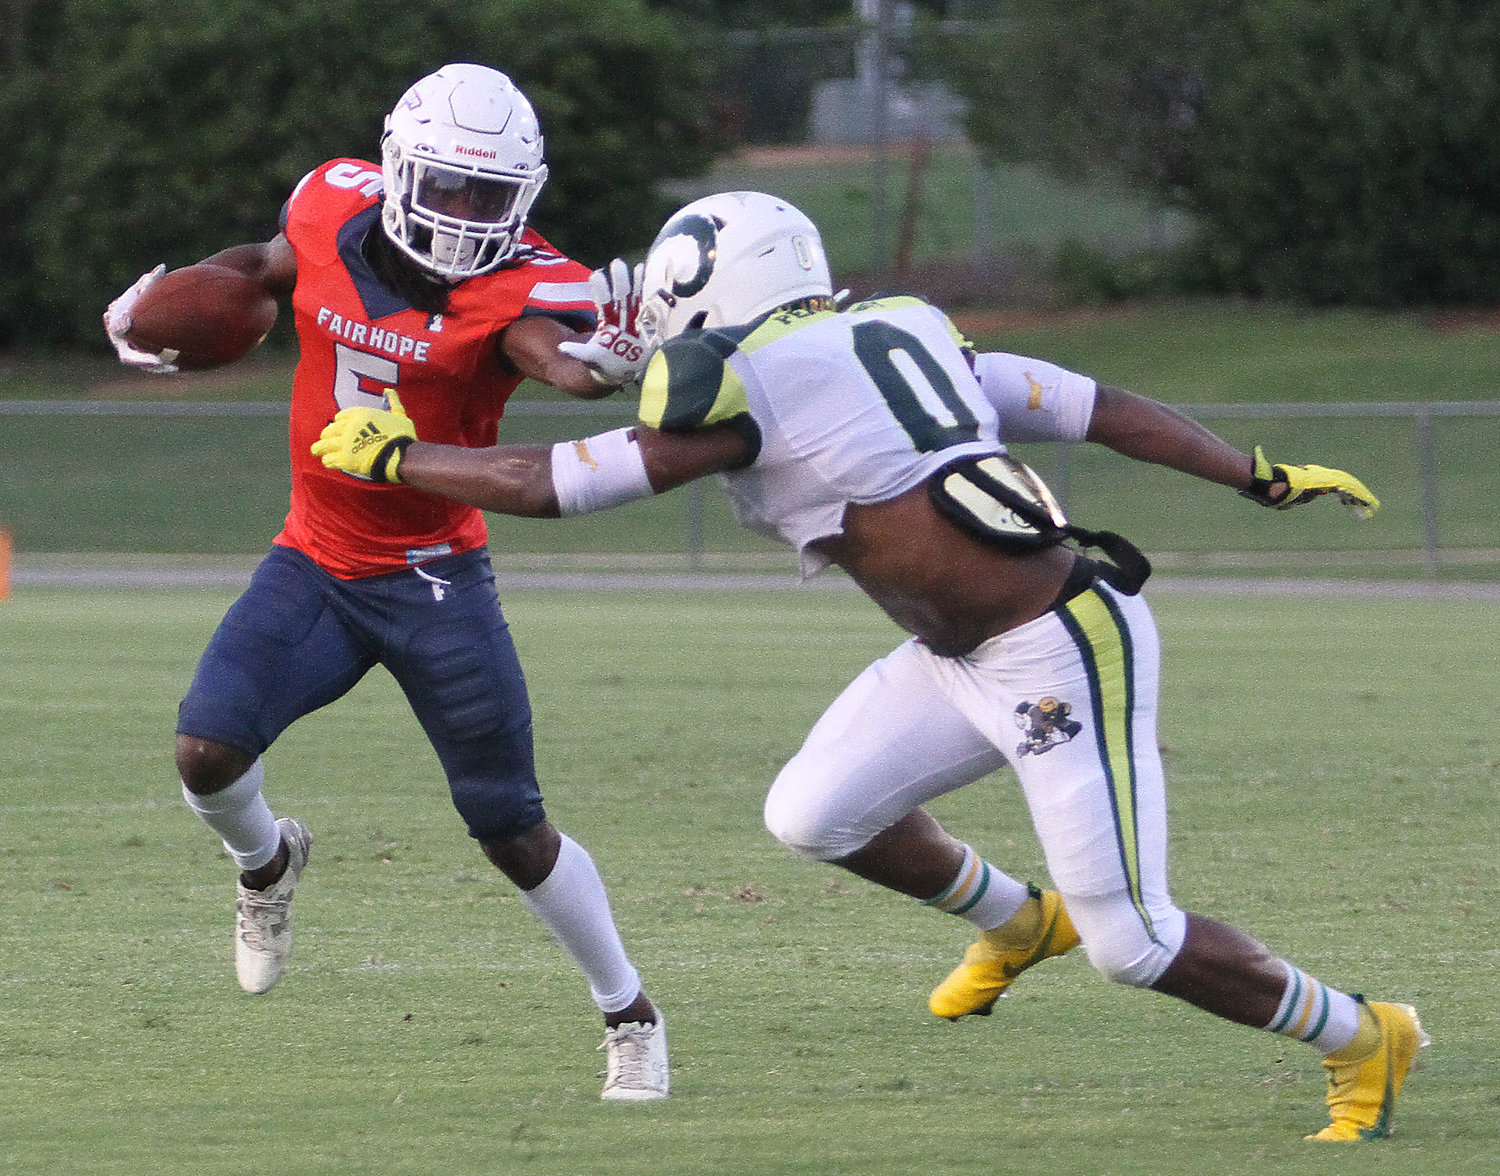 Darius Powell (5) of the Storm stiff arms Roderick Mckenzie of the Rams at Fairhope Saturday.